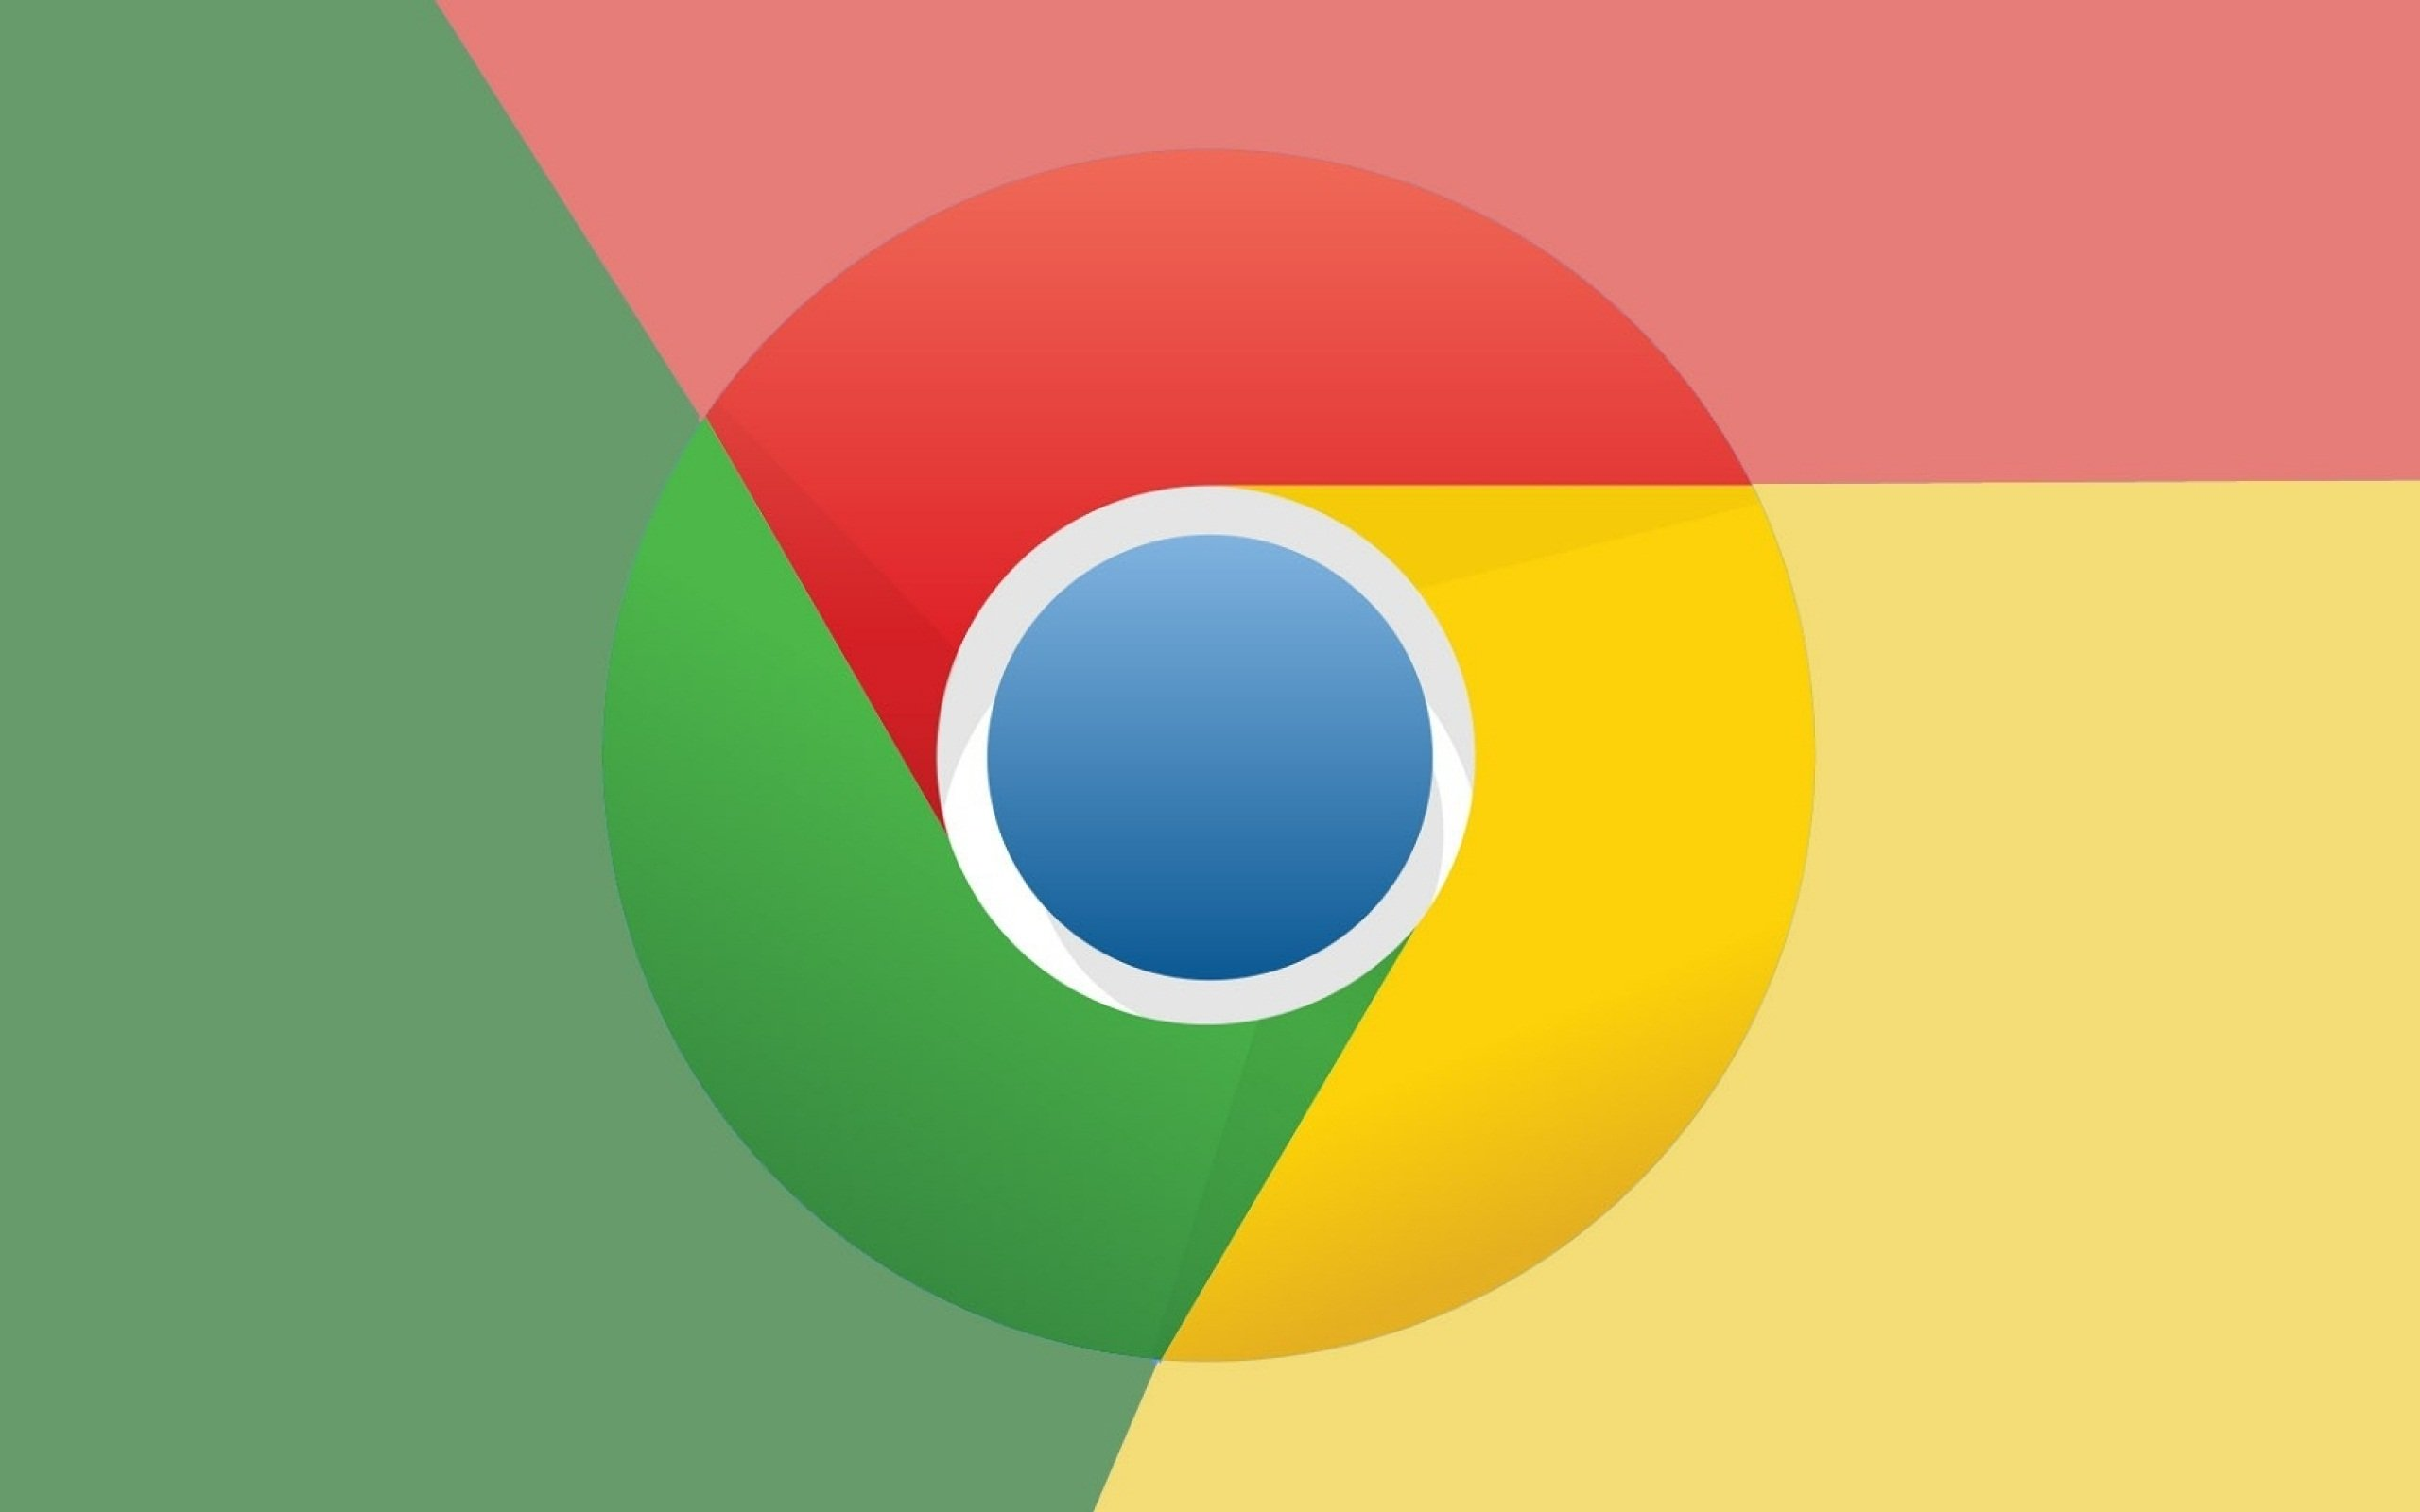 apk download google chrome gets material design makeover